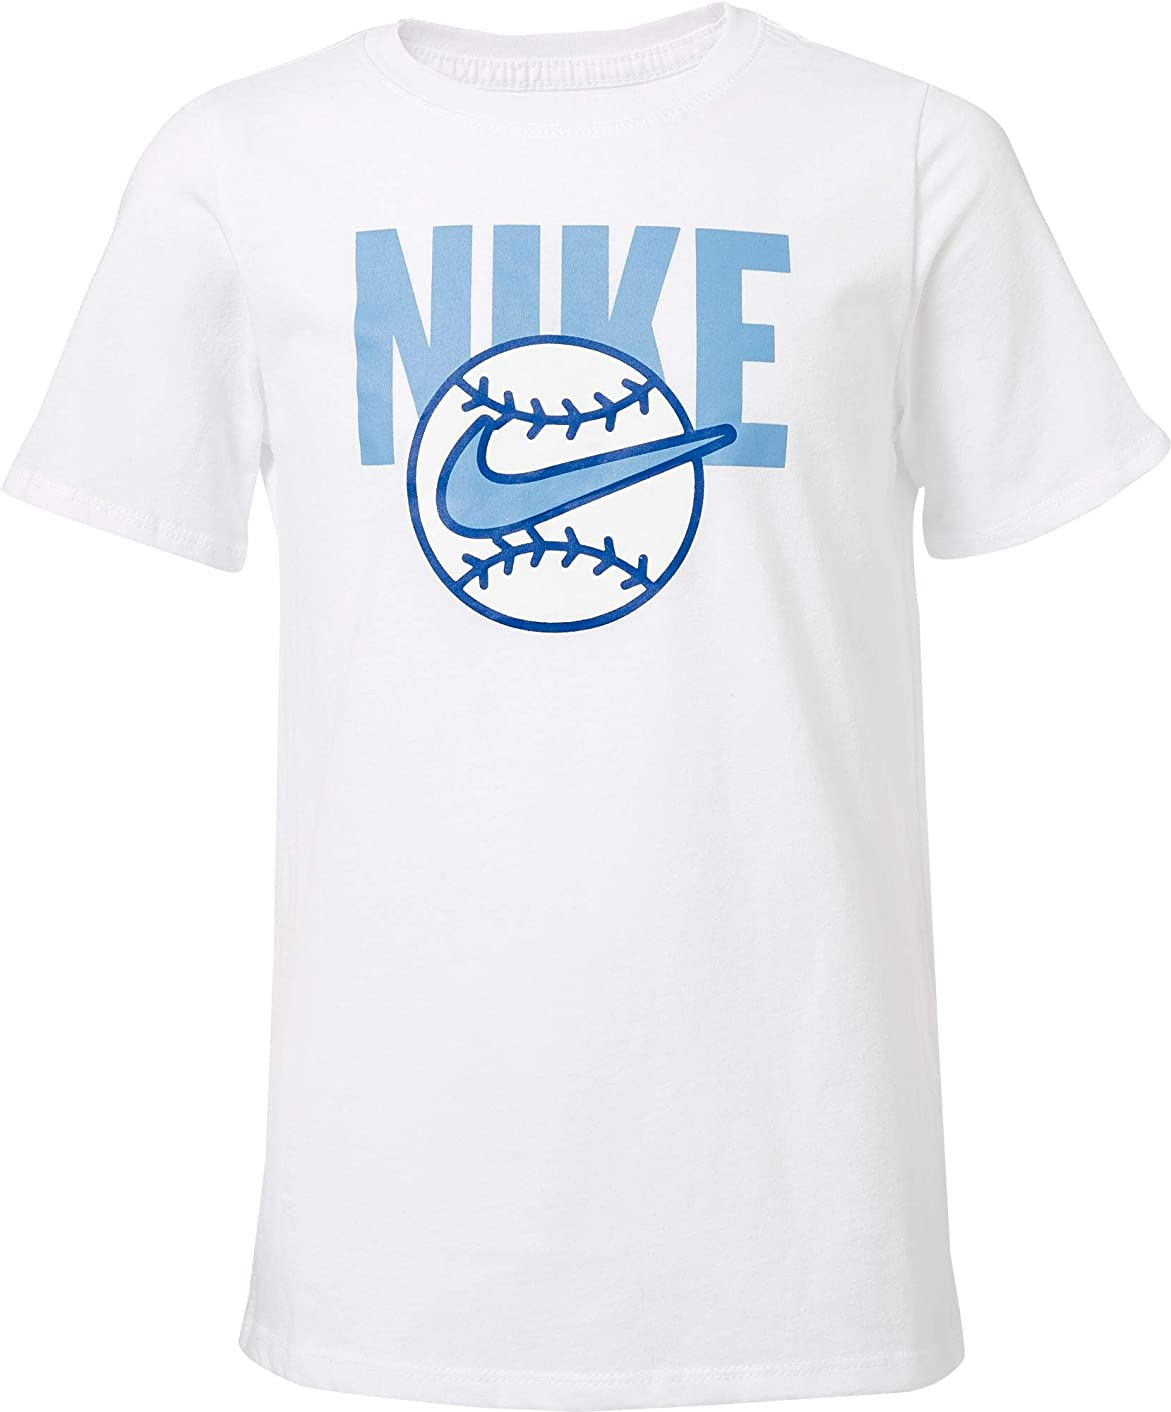 NIKE Boy's Dry Baseball Ball Graphic Tee